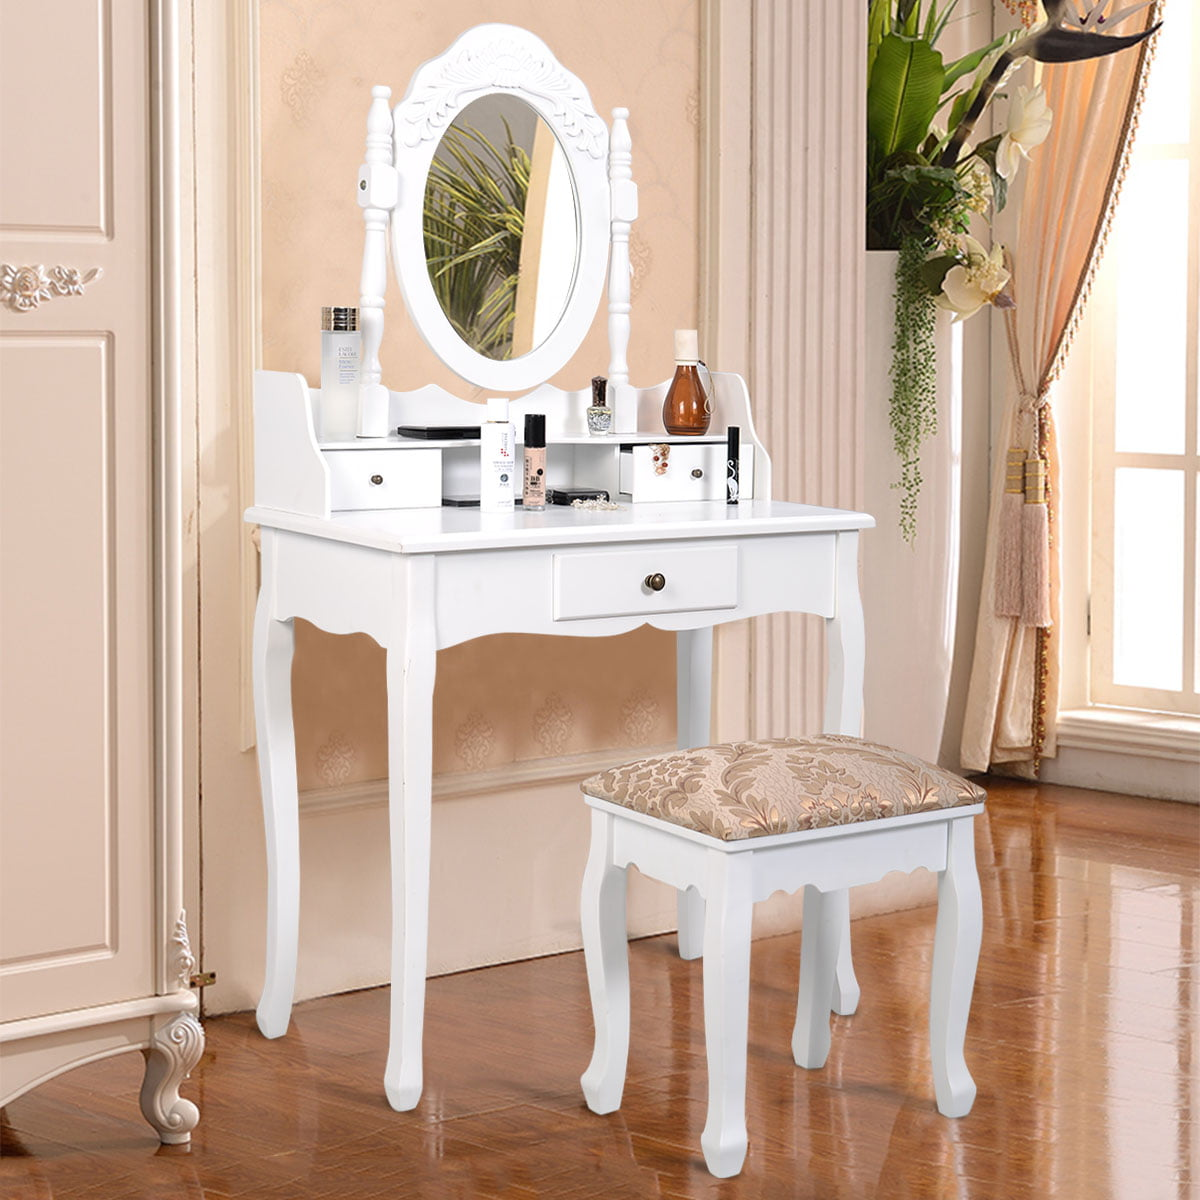 Bathroom Vanity Table Jewelry Makeup Desk Hair Dressing Organizer Bench  Drawer White - Walmart